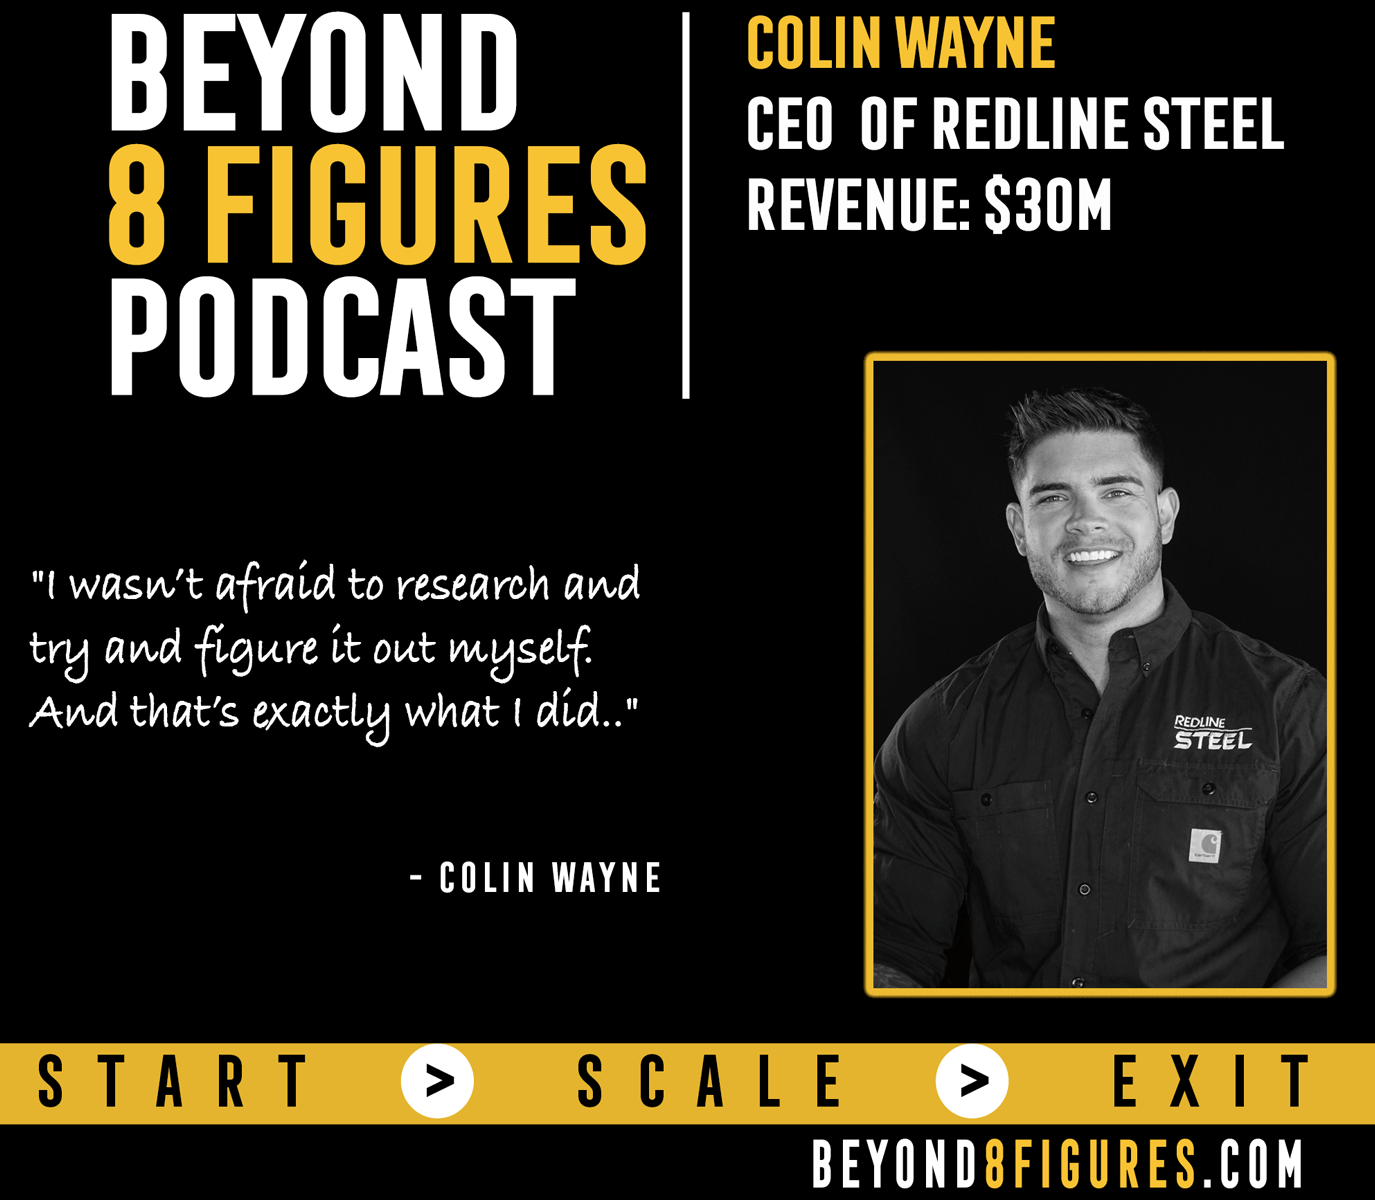 $30M in annual revenue- Colin Wayne, Redline Steel